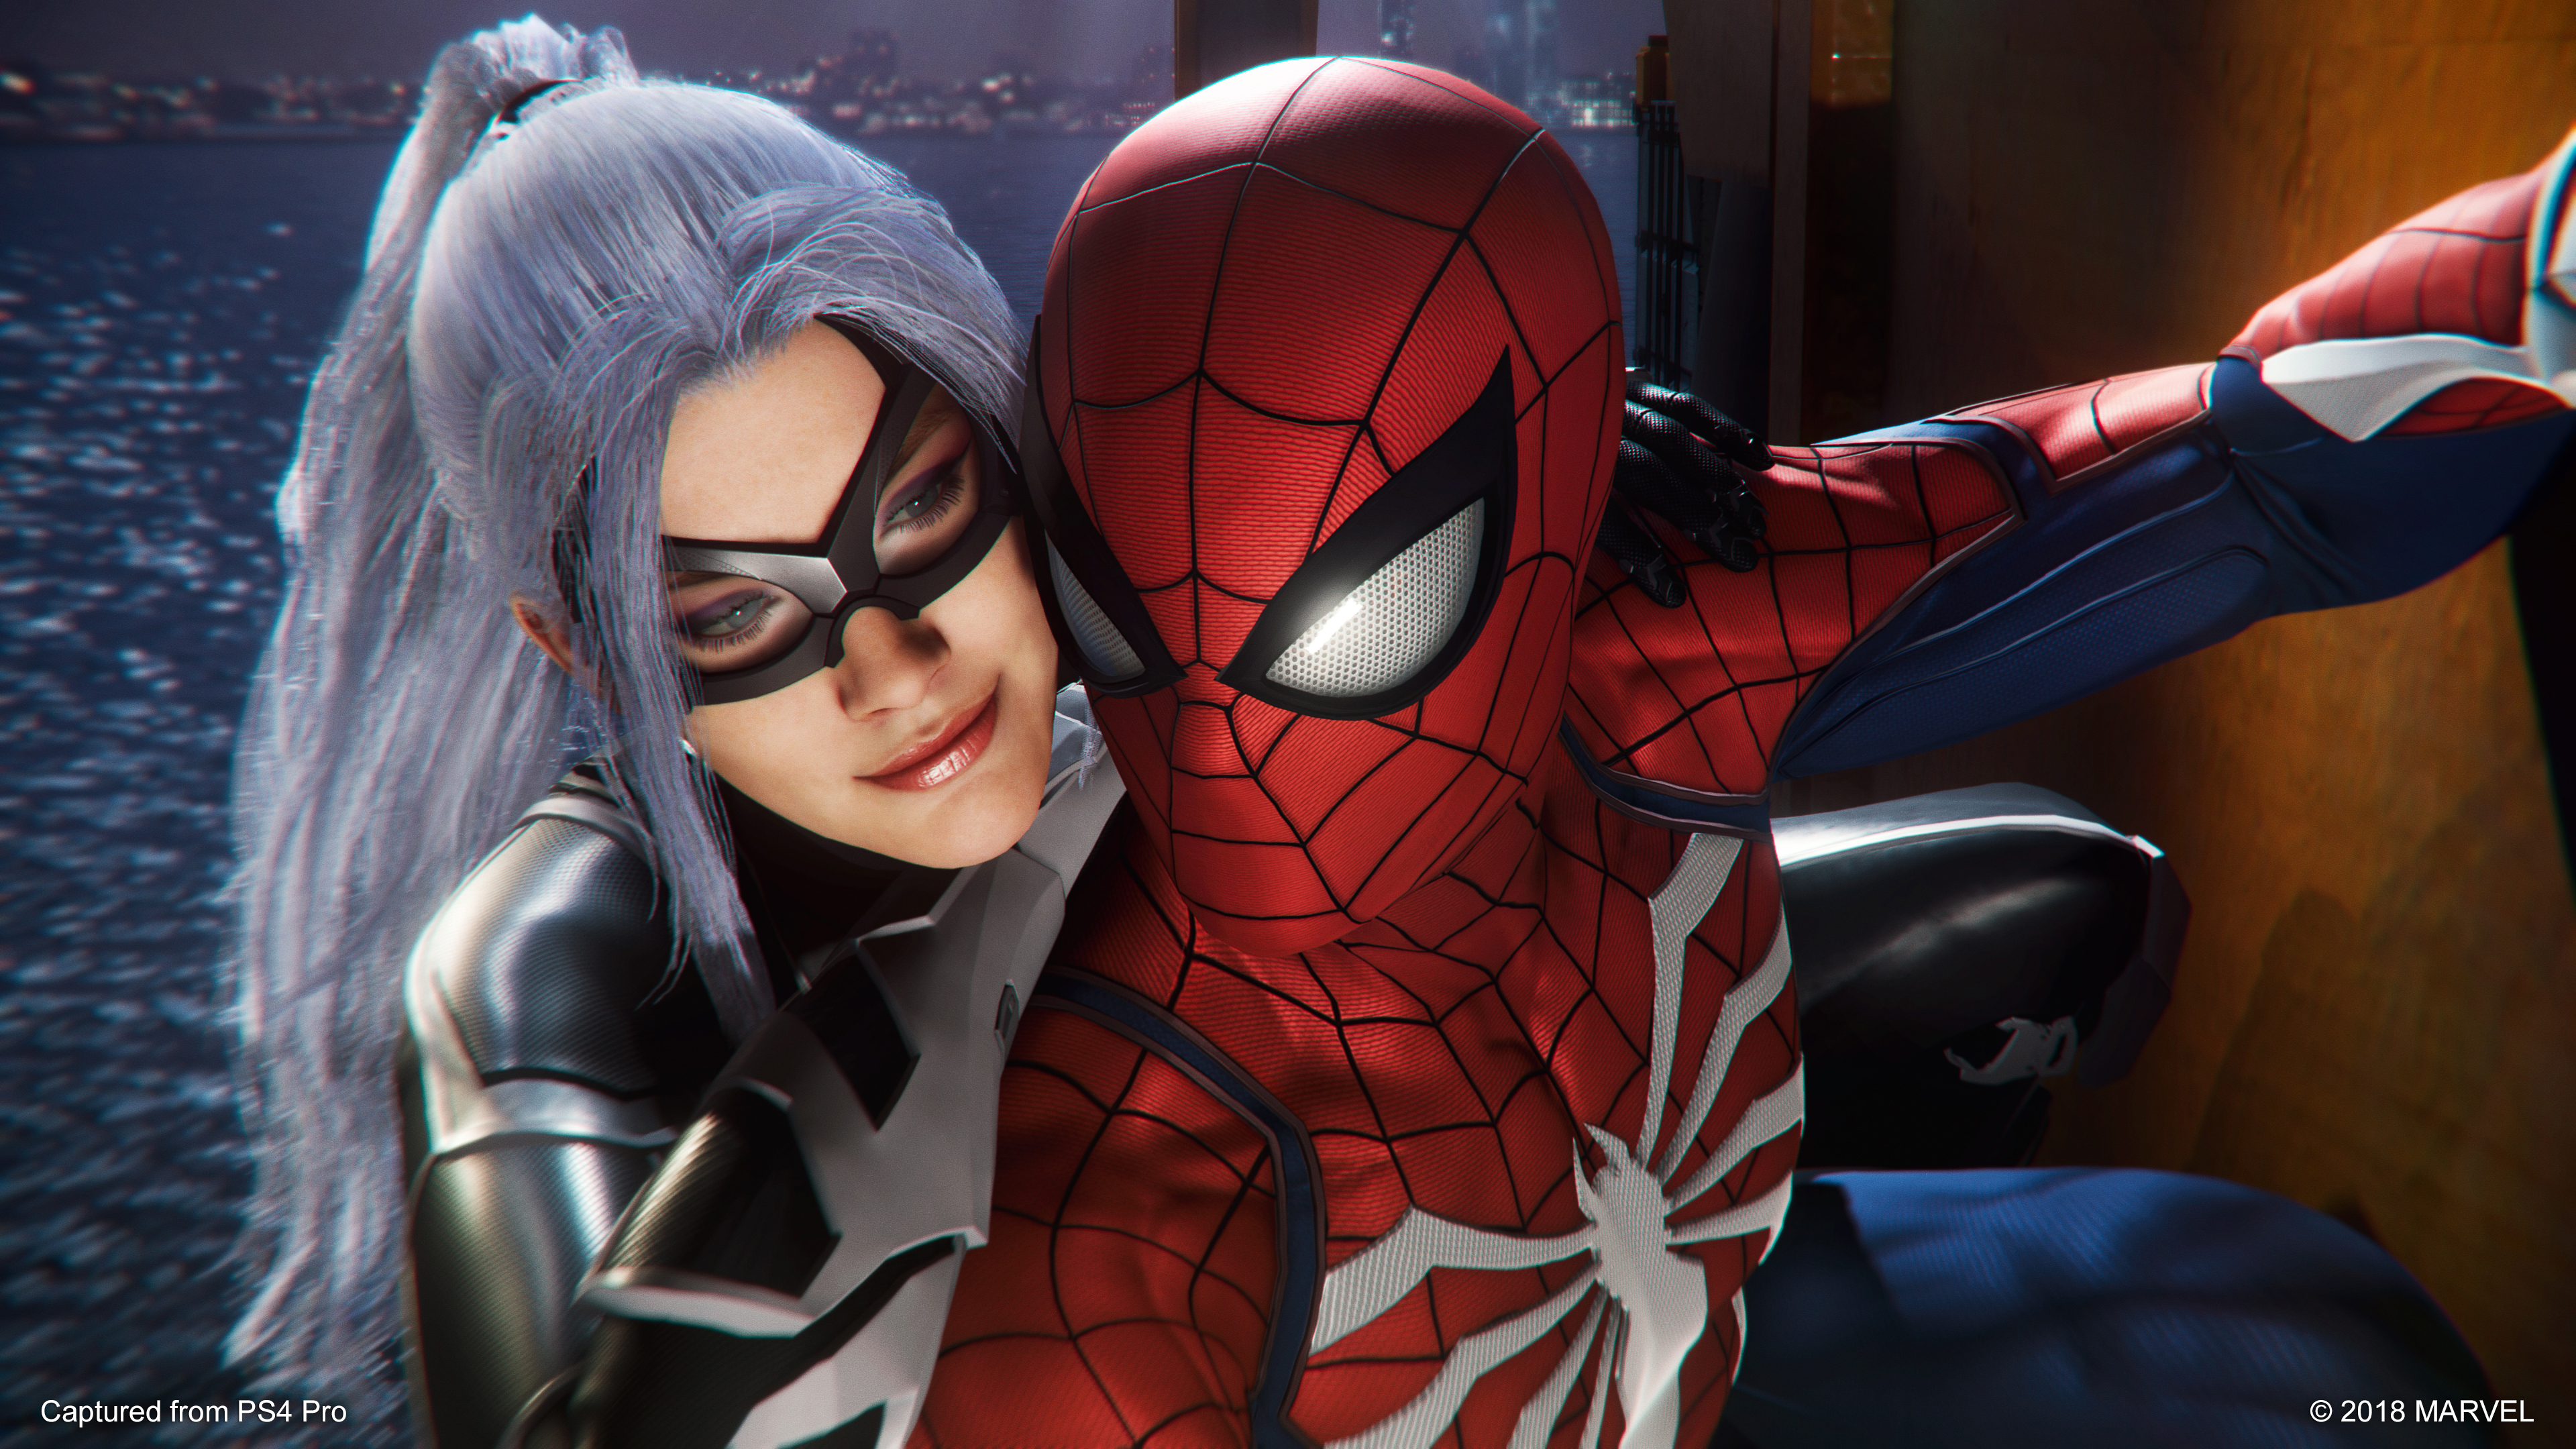 Spider-Man' PS4 DLC Update: Who Is Black Cat in